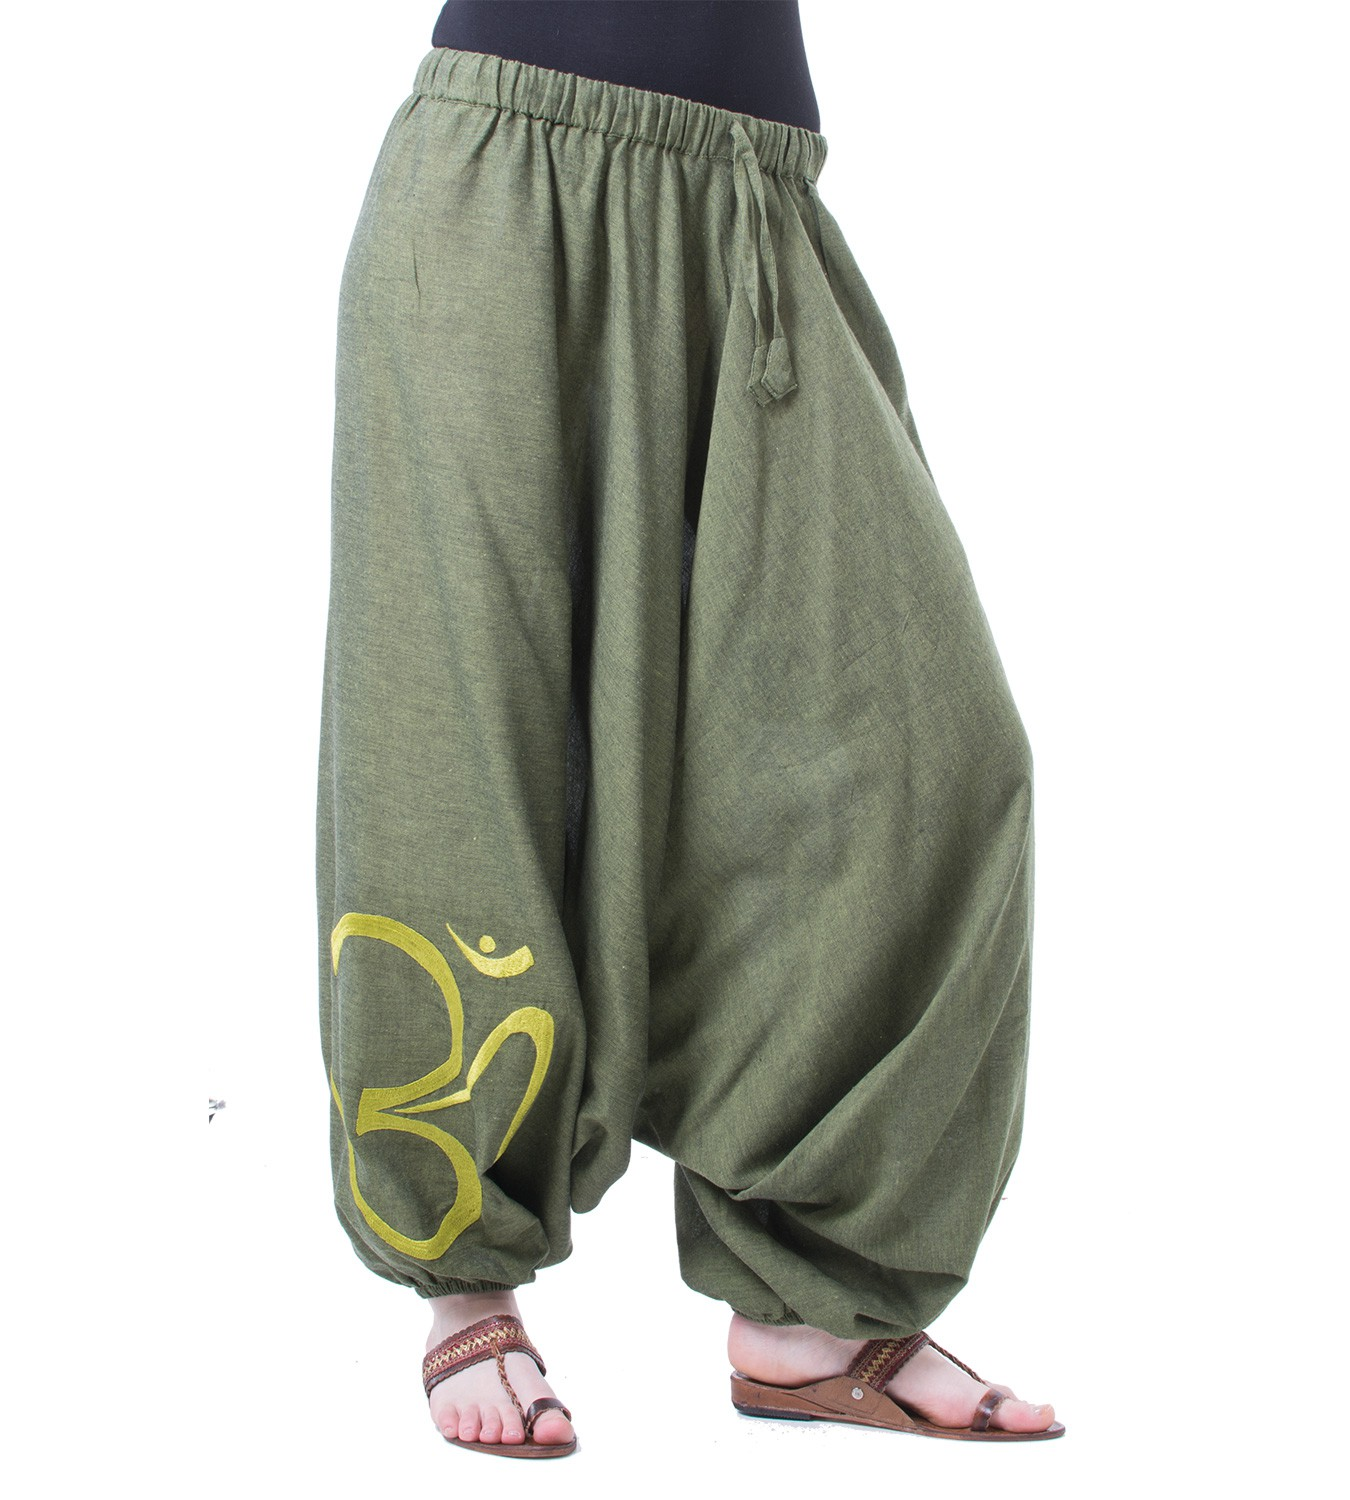 pants symbol gender Cherokee infinity scrubs provide a comfortable fit and stylish look check out all the fun designs and colors we have to offer at scrubs and beyond today.